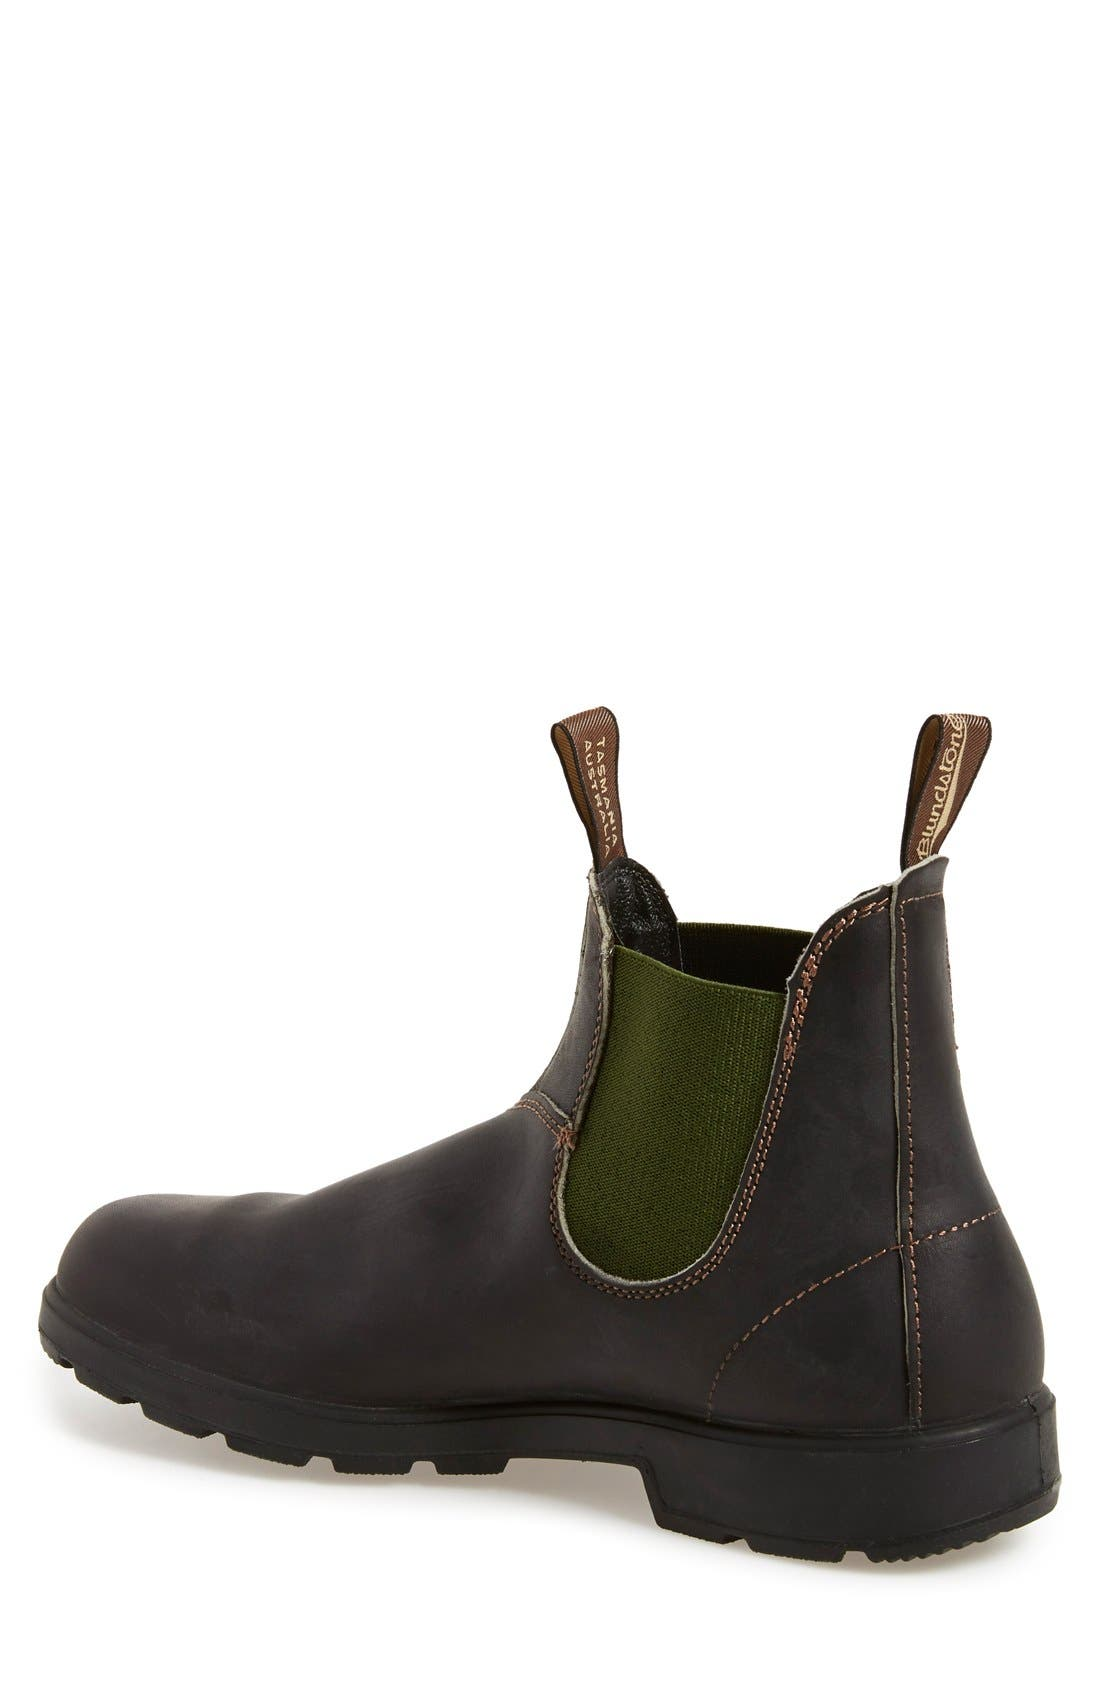 Footwear Chelsea Boot,                             Alternate thumbnail 5, color,                             STOUT BROWN